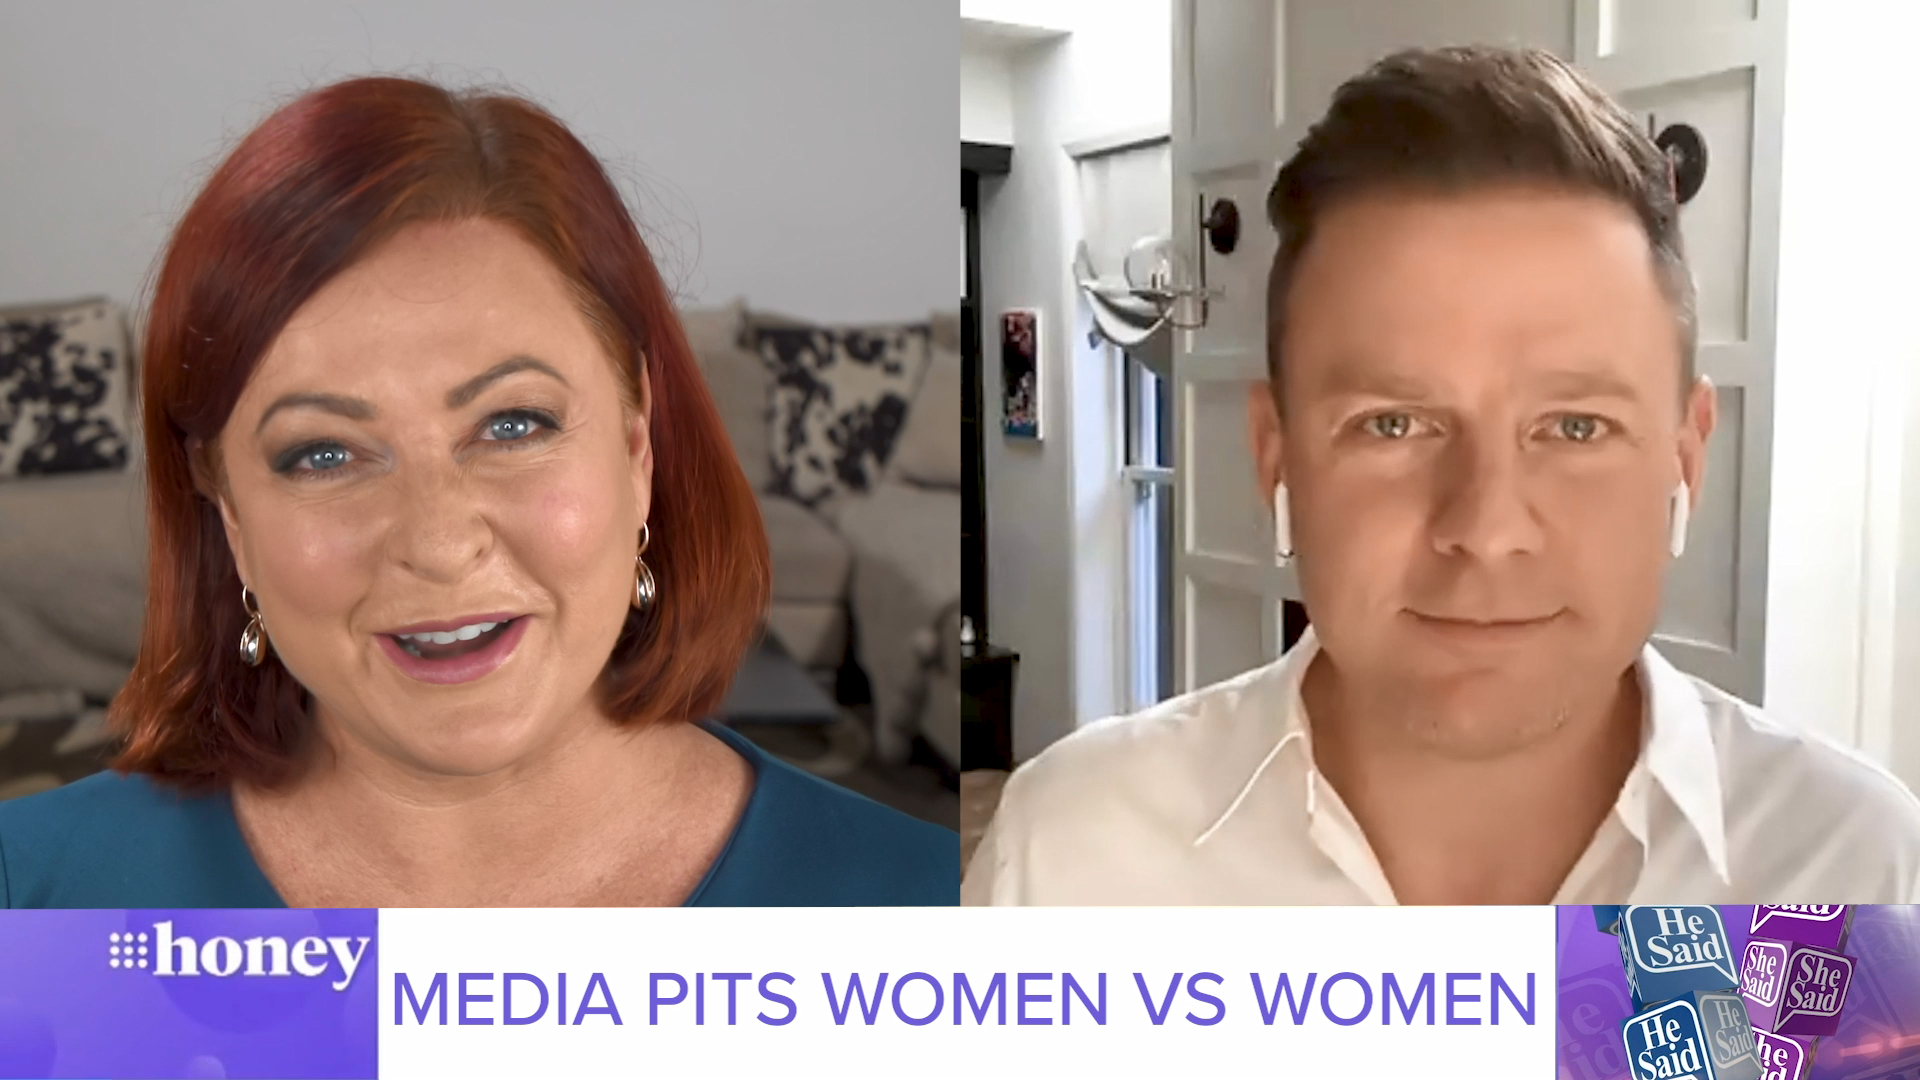 He Said, She Said: Does the media pit women against each other?